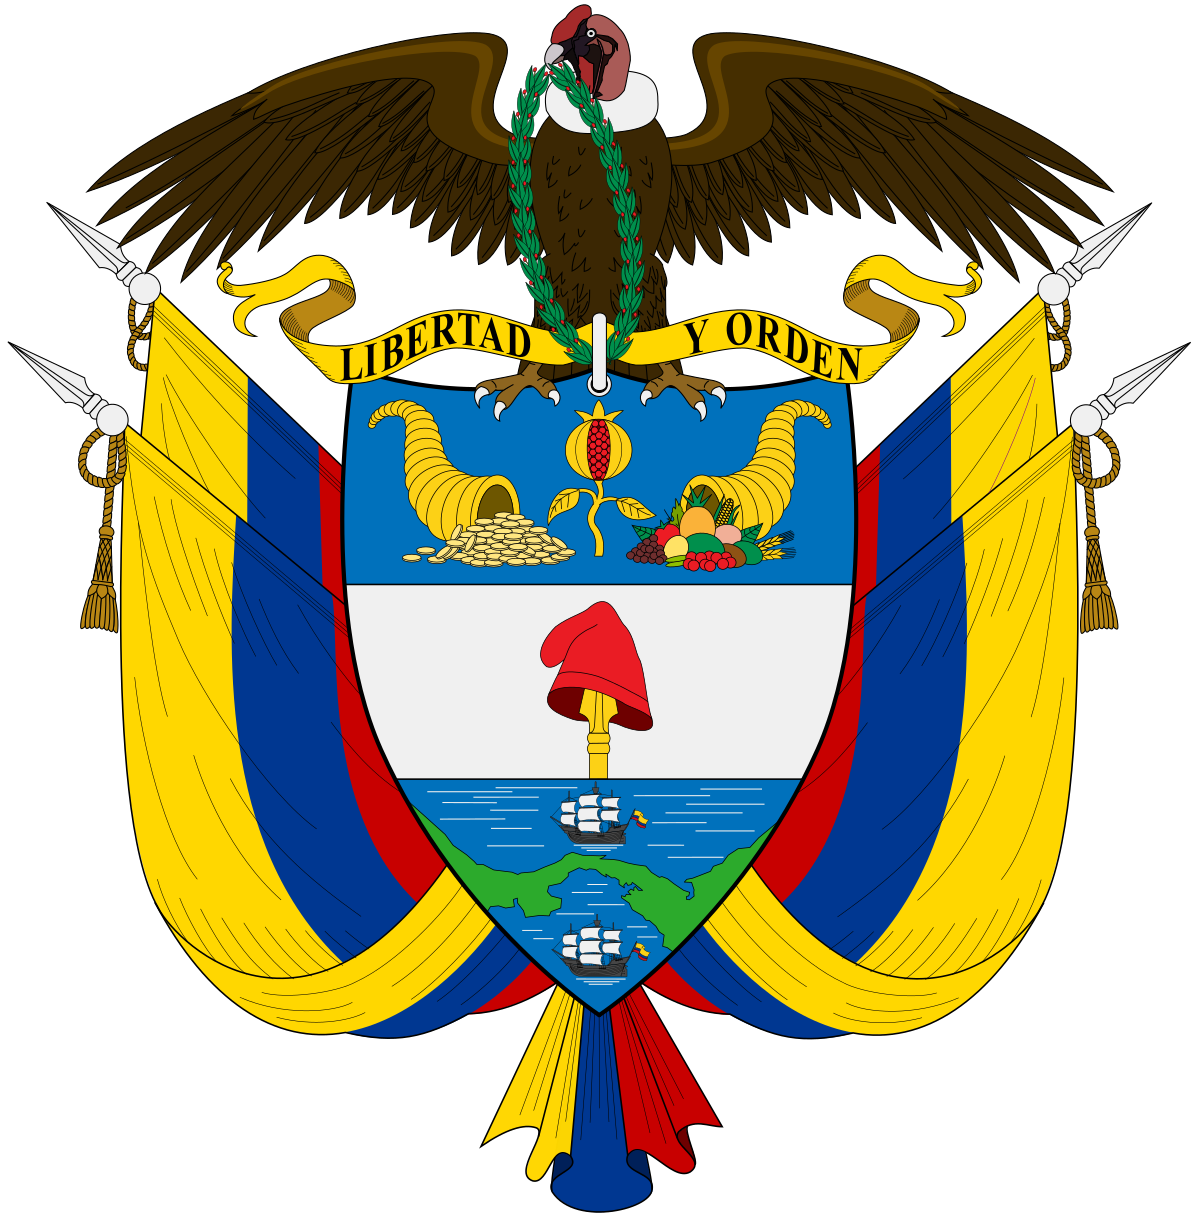 Coat of arms colombia. Democracy clipart government structure